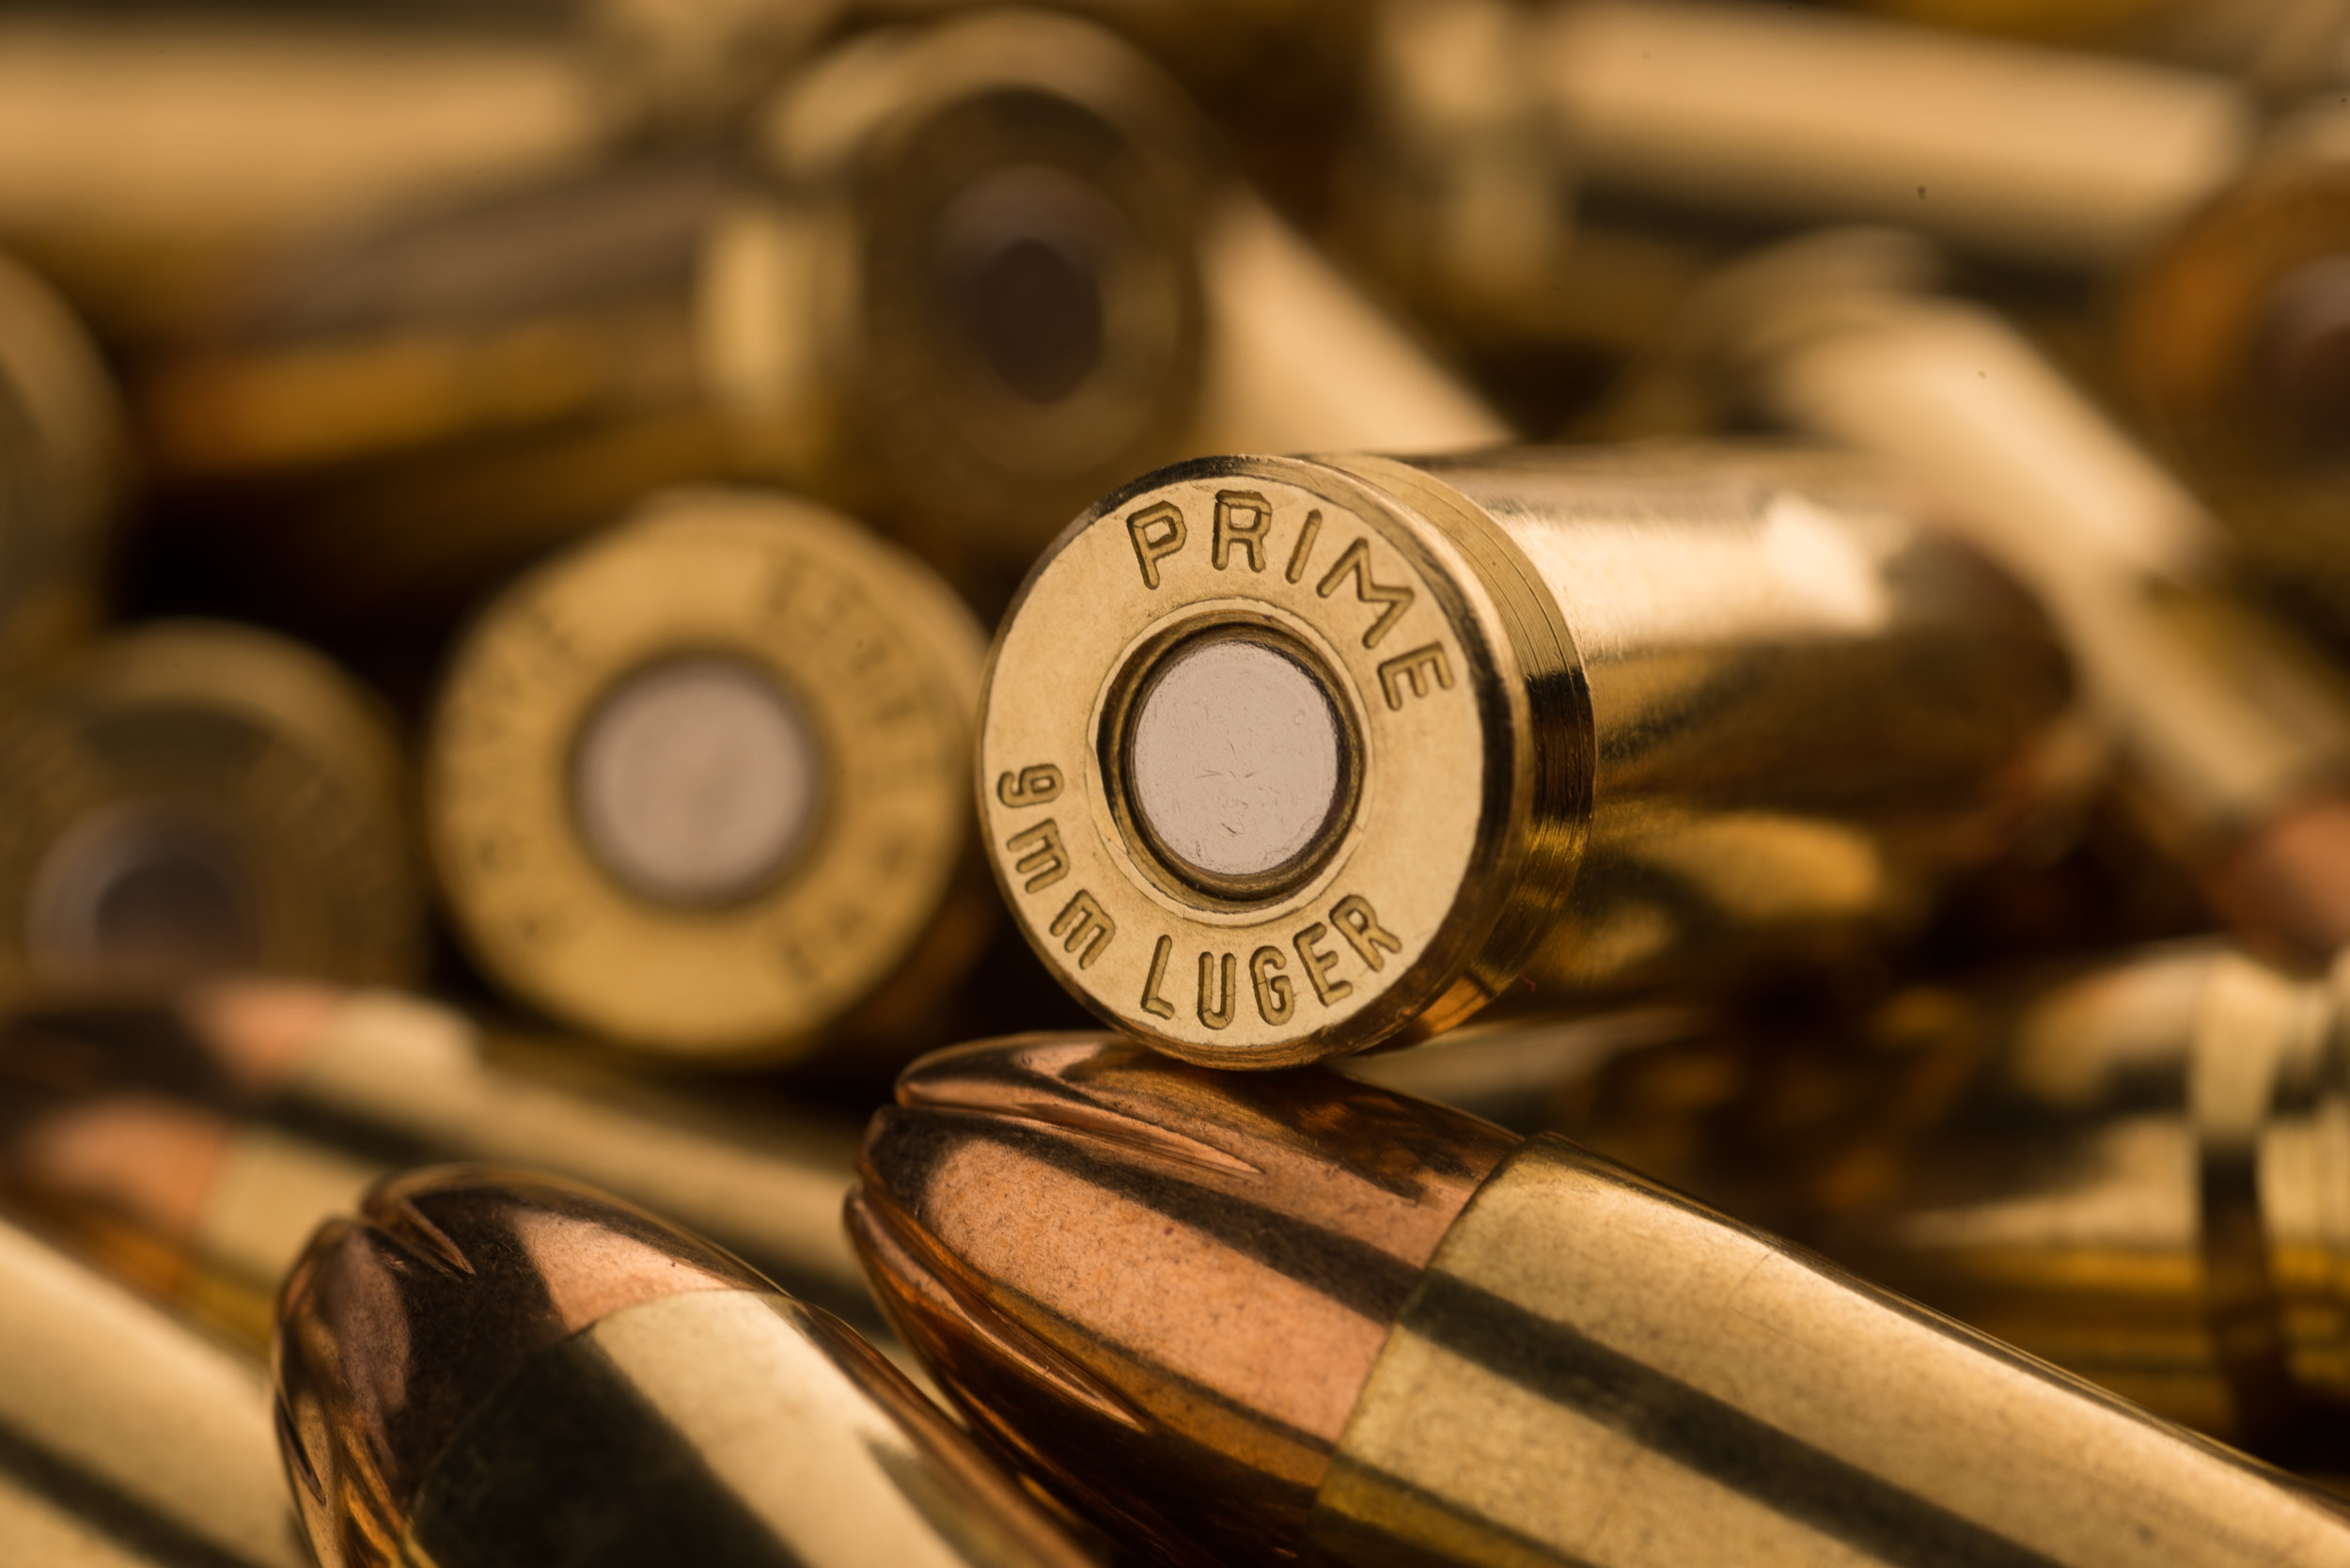 Beautiful PRIME head stamp on some 9mm brass!